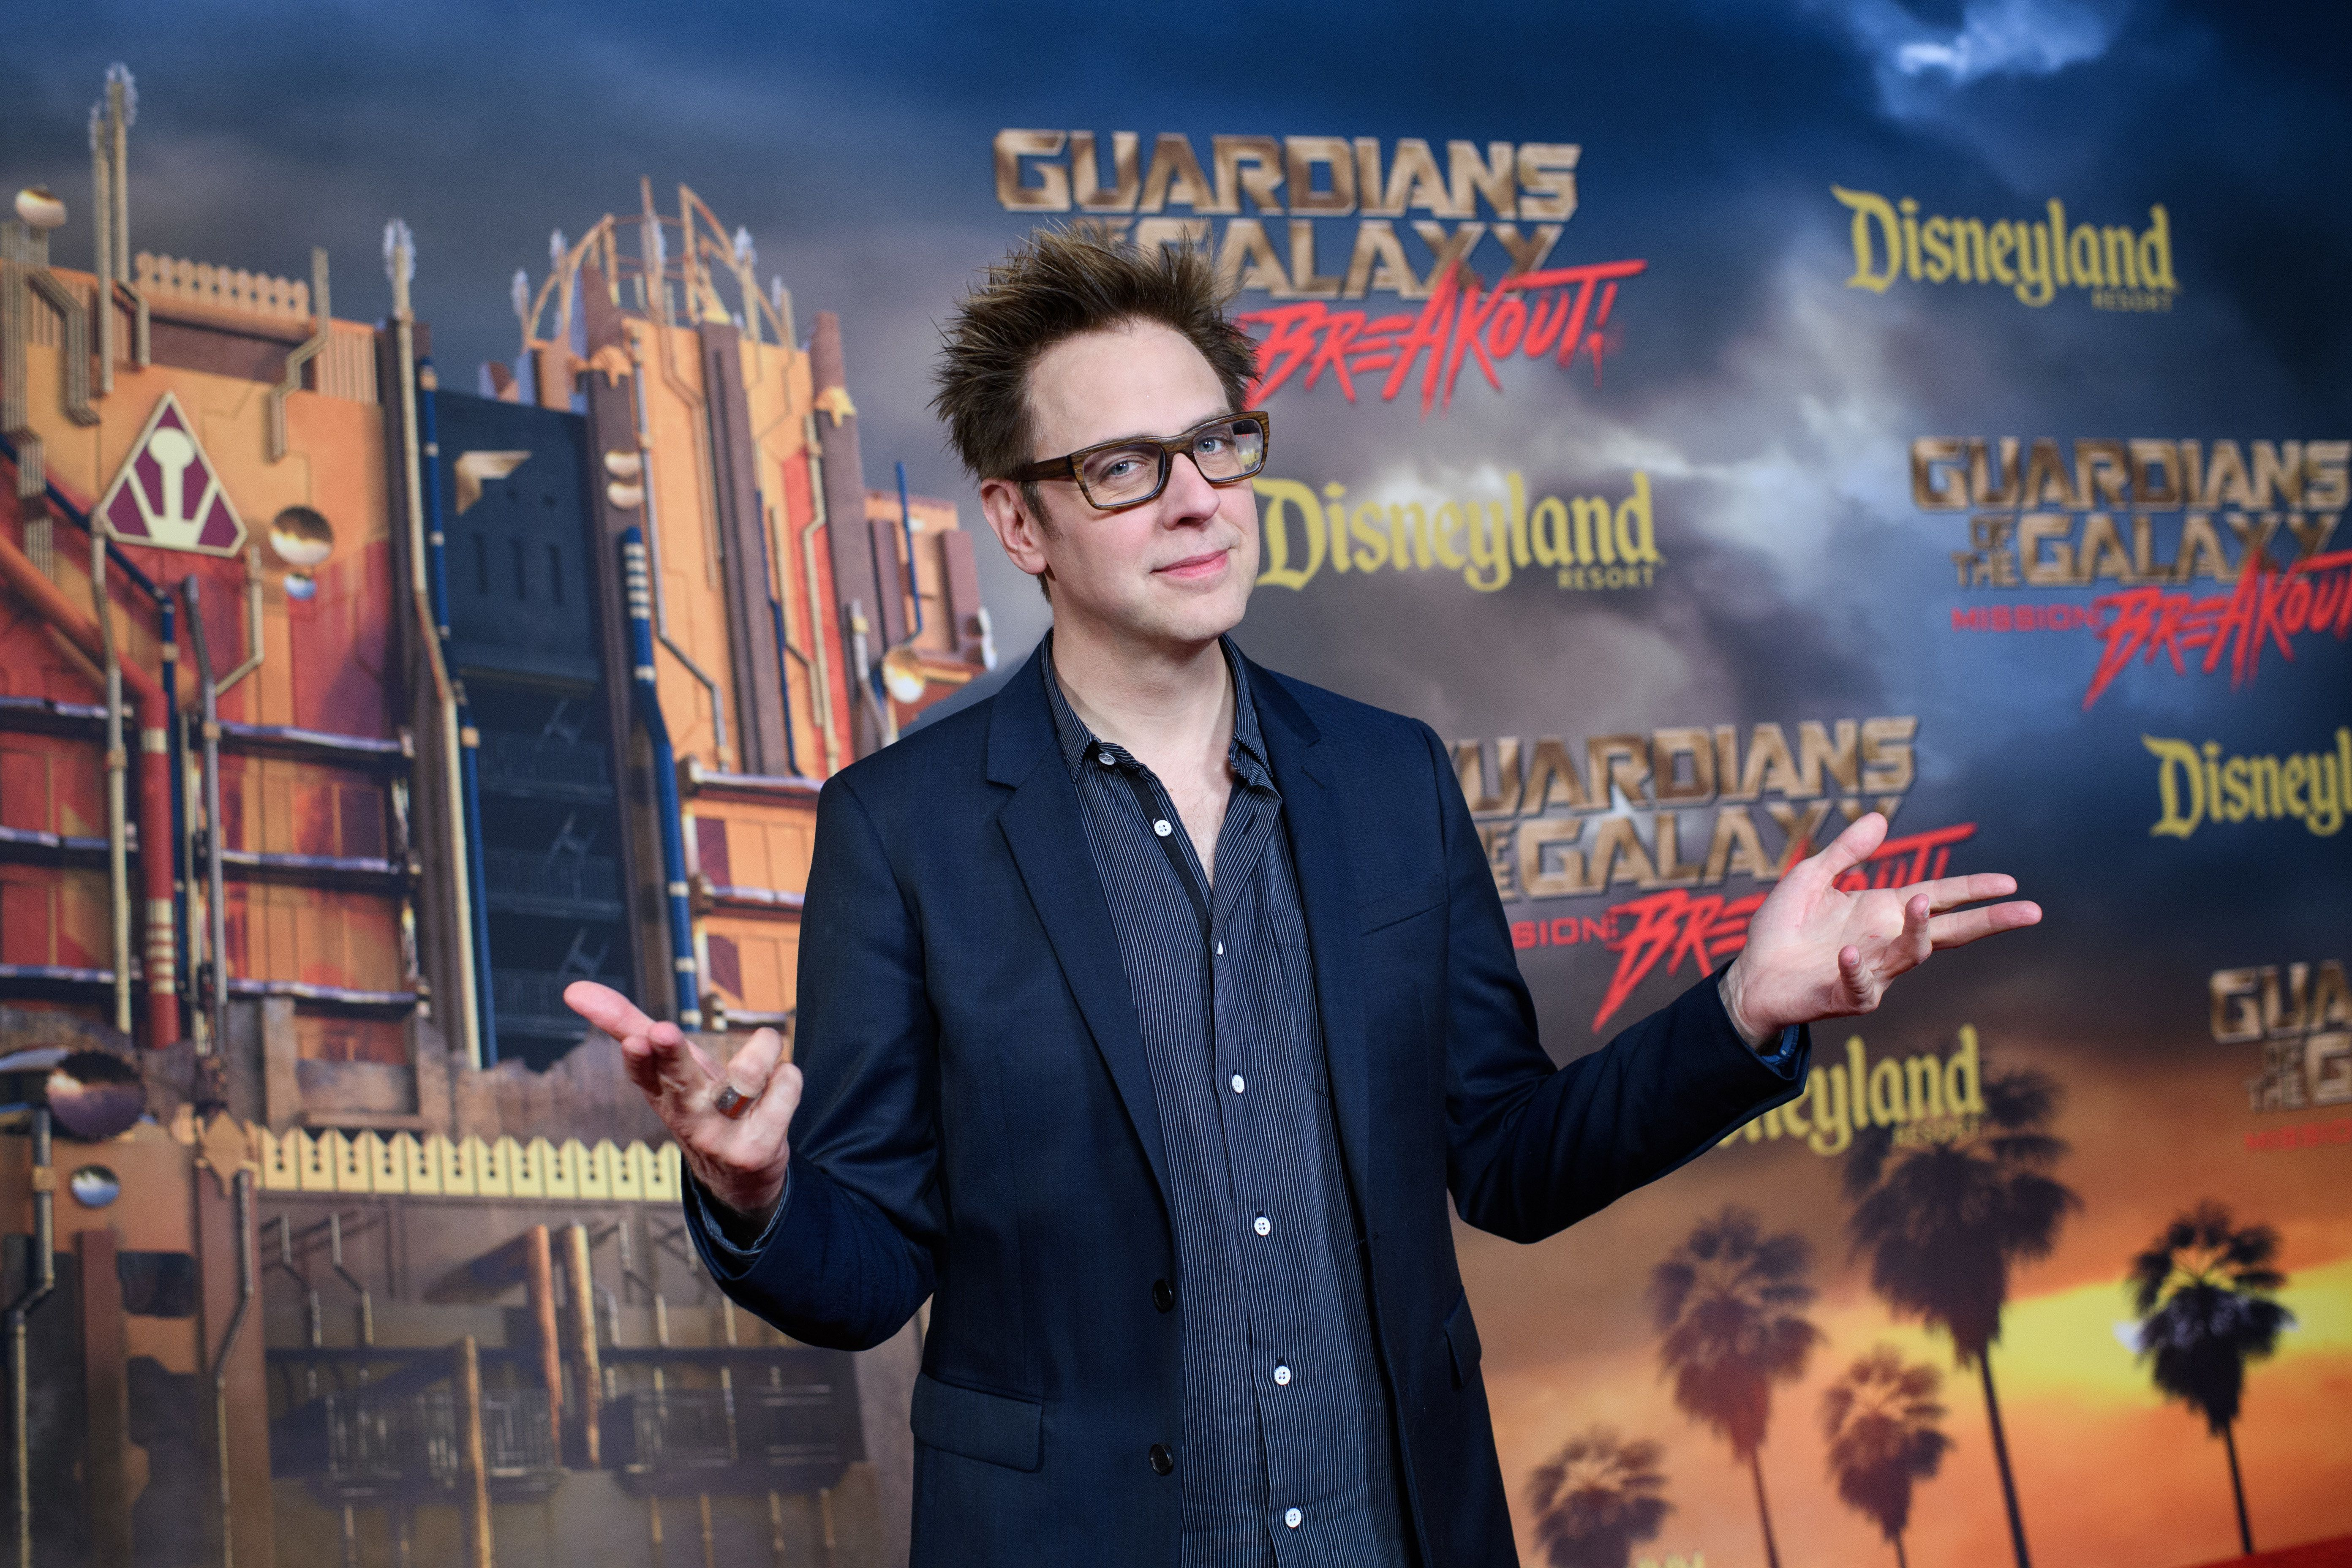 'Guardians Of The Galaxy' Director Masterfully Trolls Marvel Executive